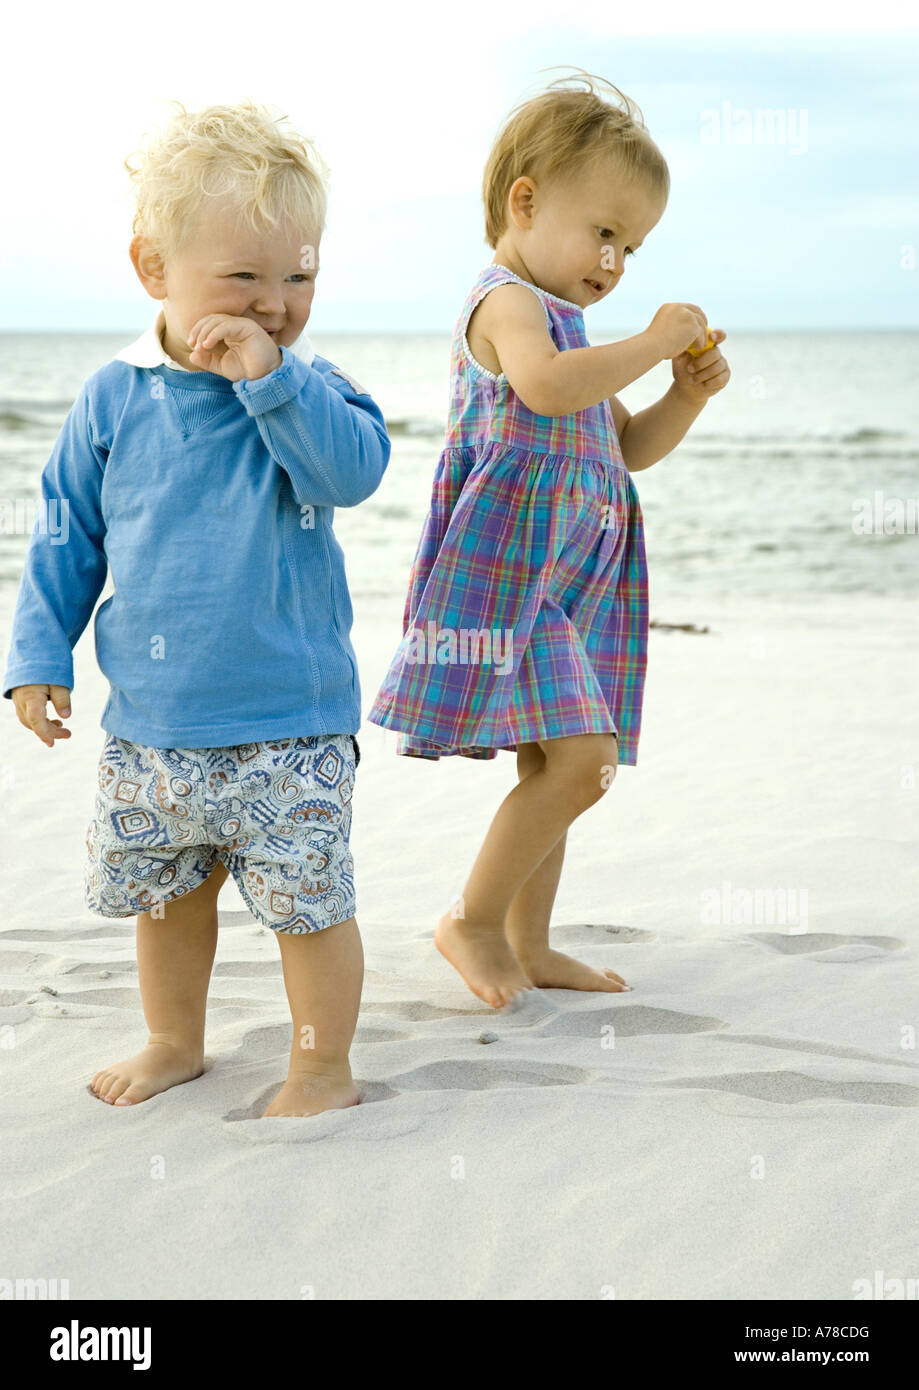 Two toddlers standing on beach - Stock Image